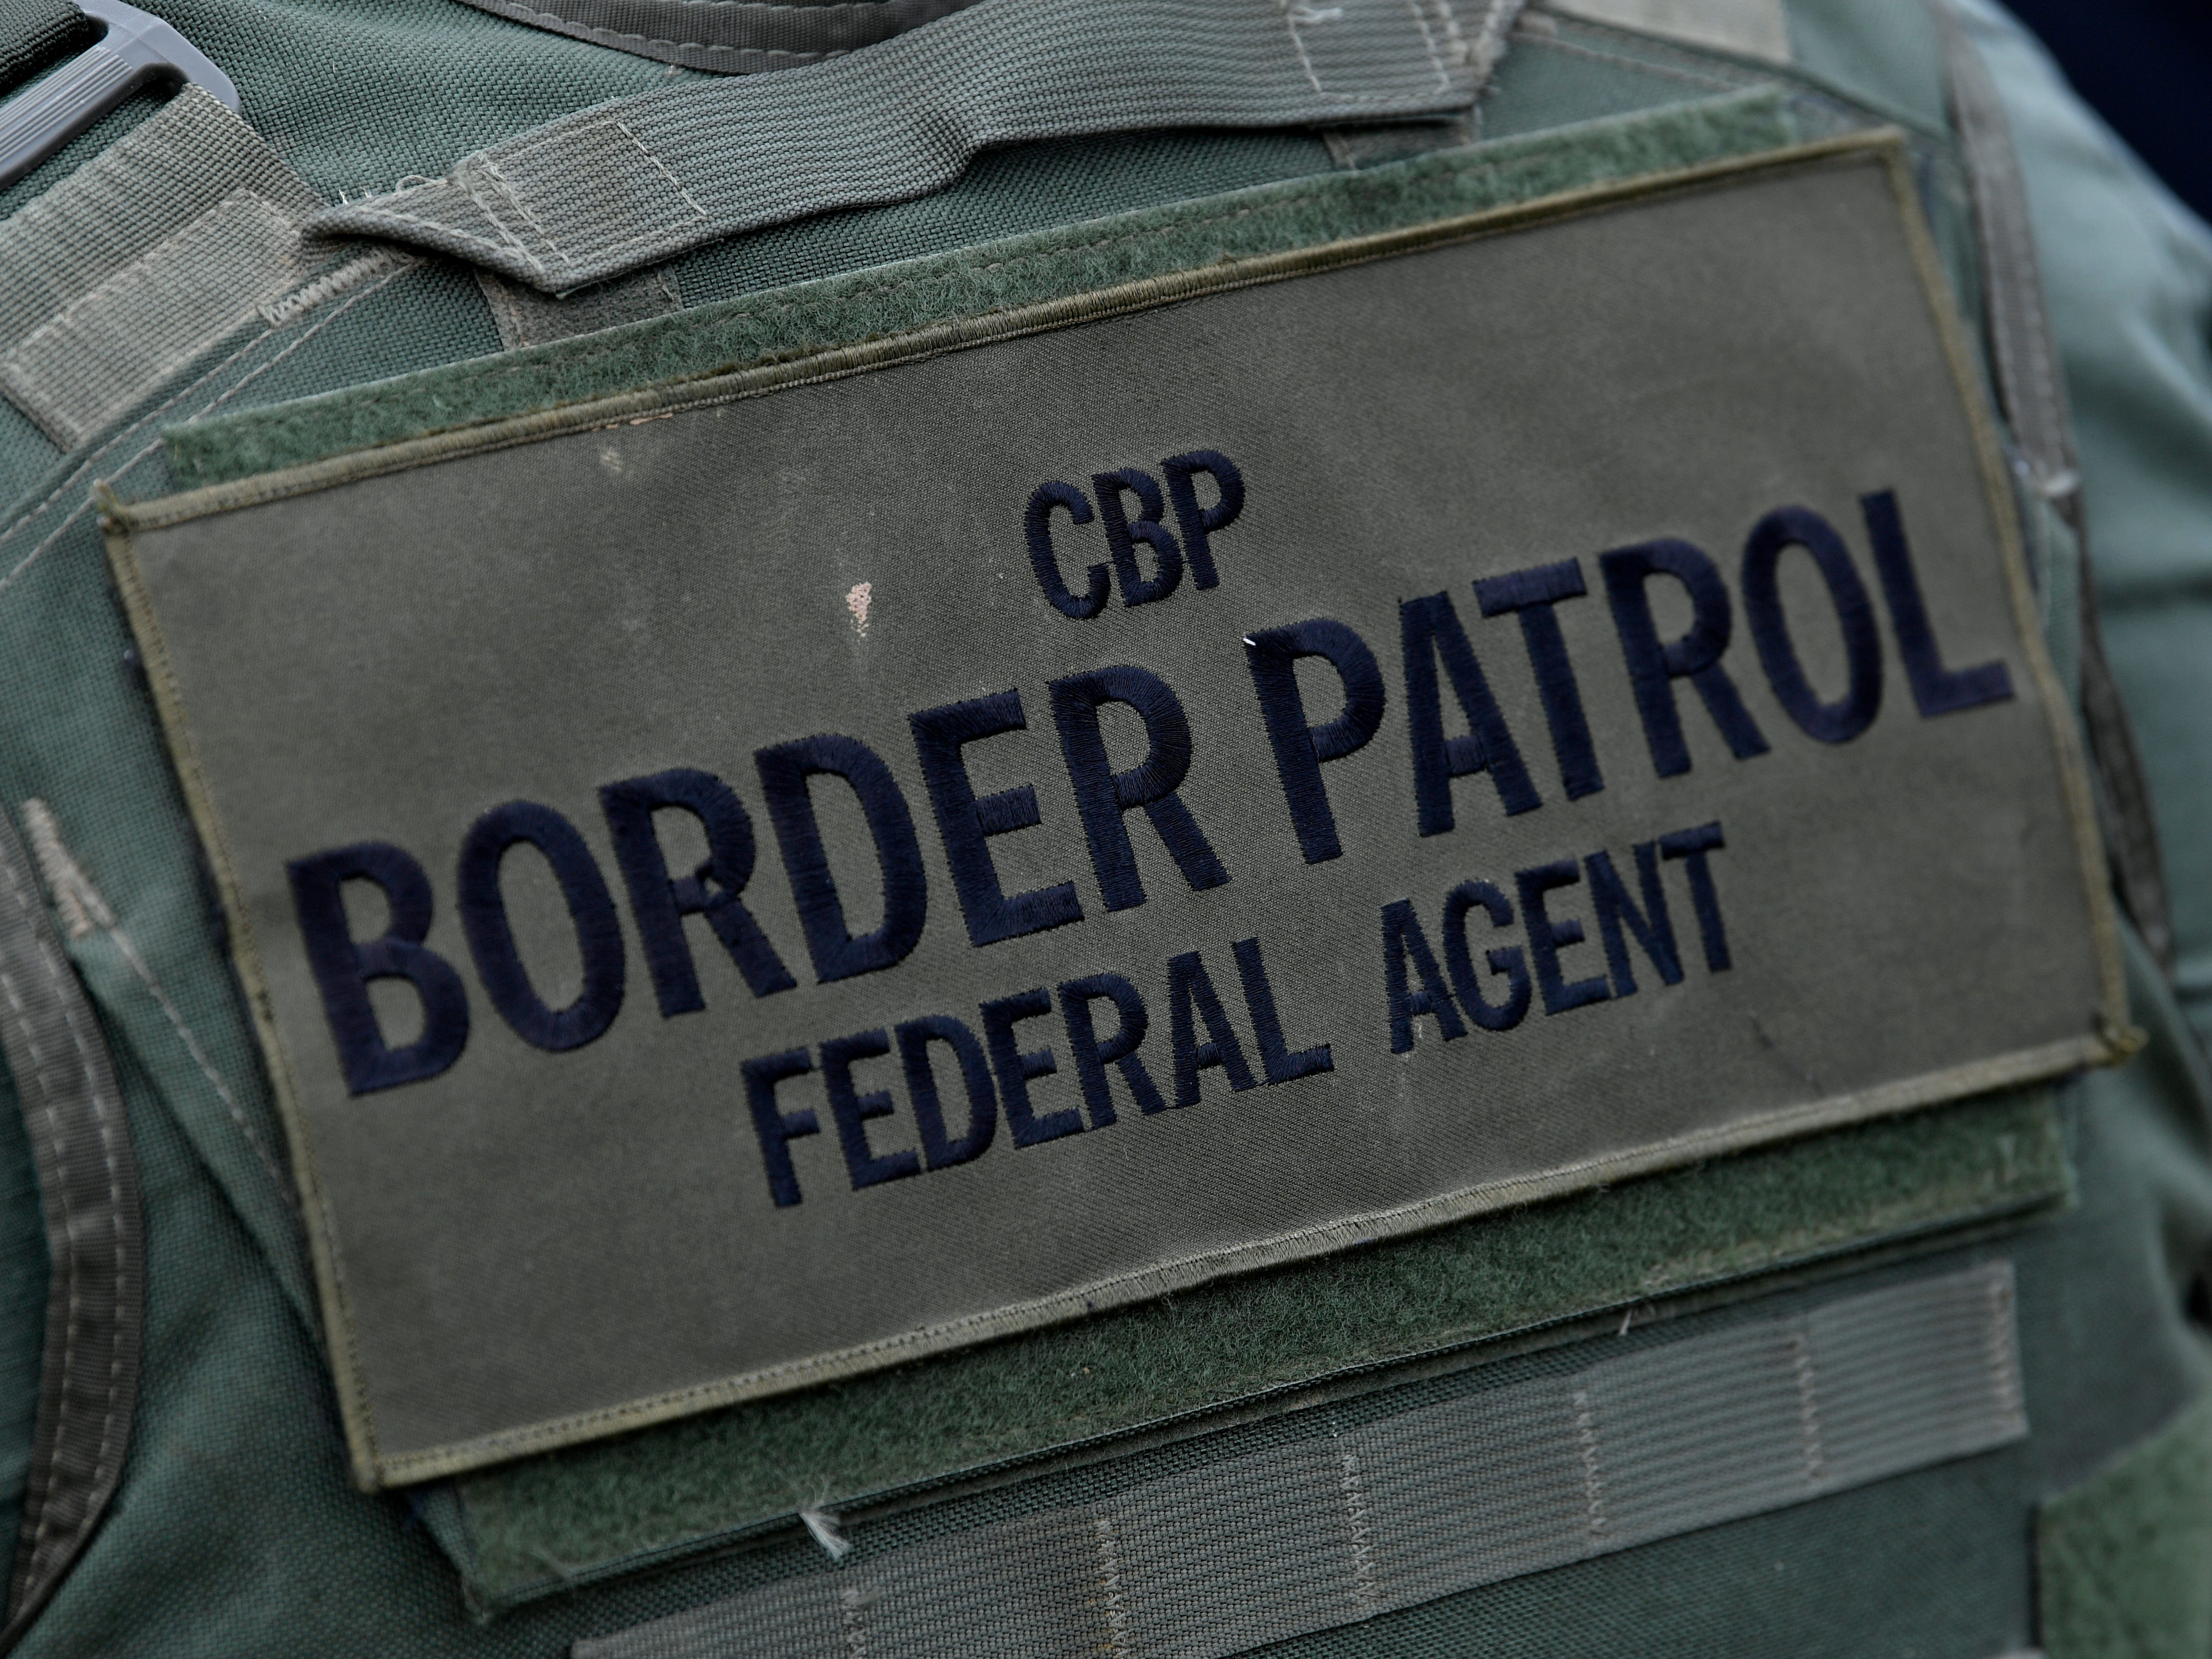 A U.S. Customs and Border Protection agent listens to a press conference in Eagle Pass Wednesday Feb. 6, 2019. Officials from CPB, the City of Eagle Pass, and the Port of Entry held an outdoor briefing not far from the Rio Grande where a large migrant caravan has arrived on the other side of the river in Piedras Negras.